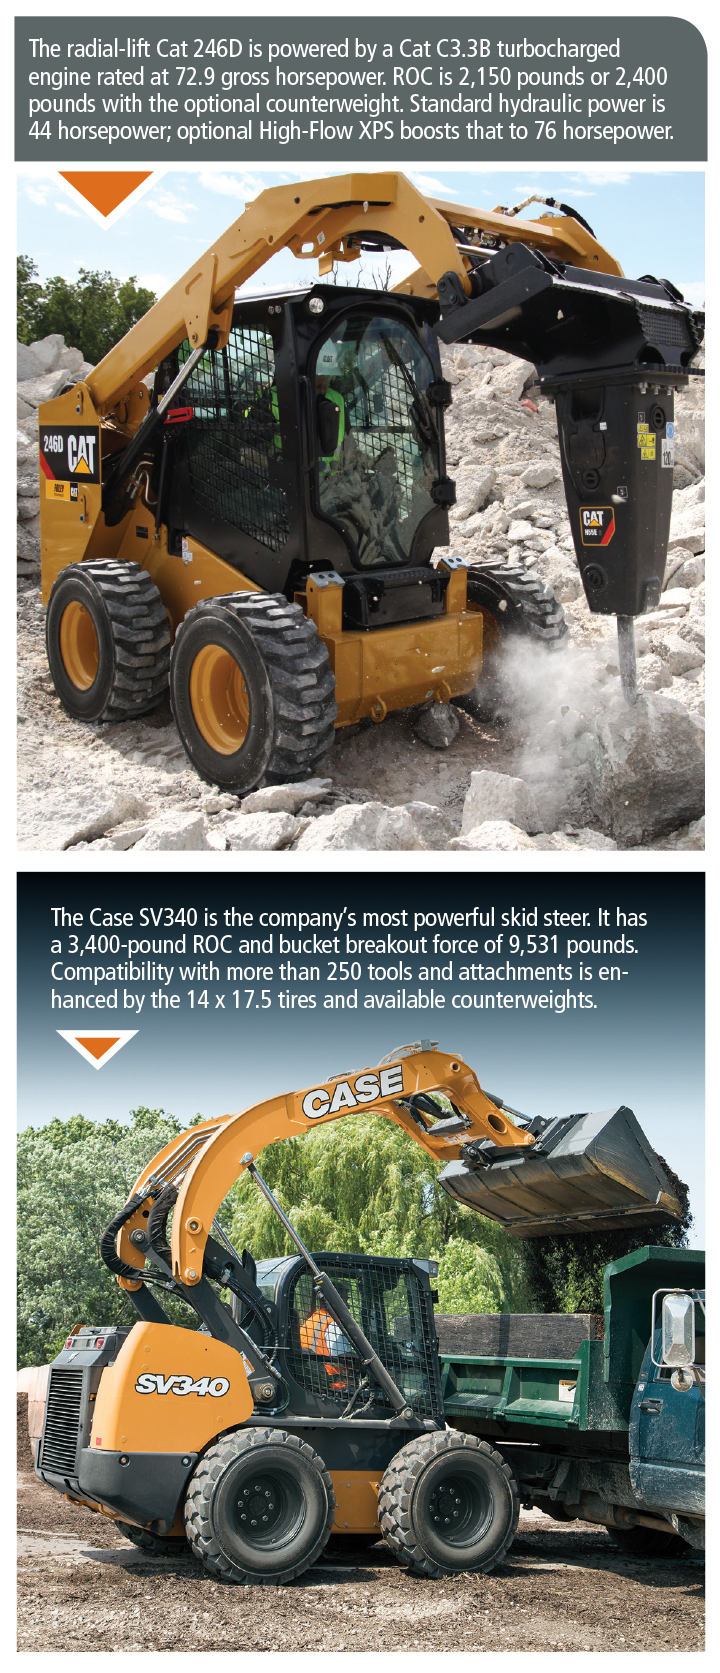 How the skid steer is remaining relevant in the industry